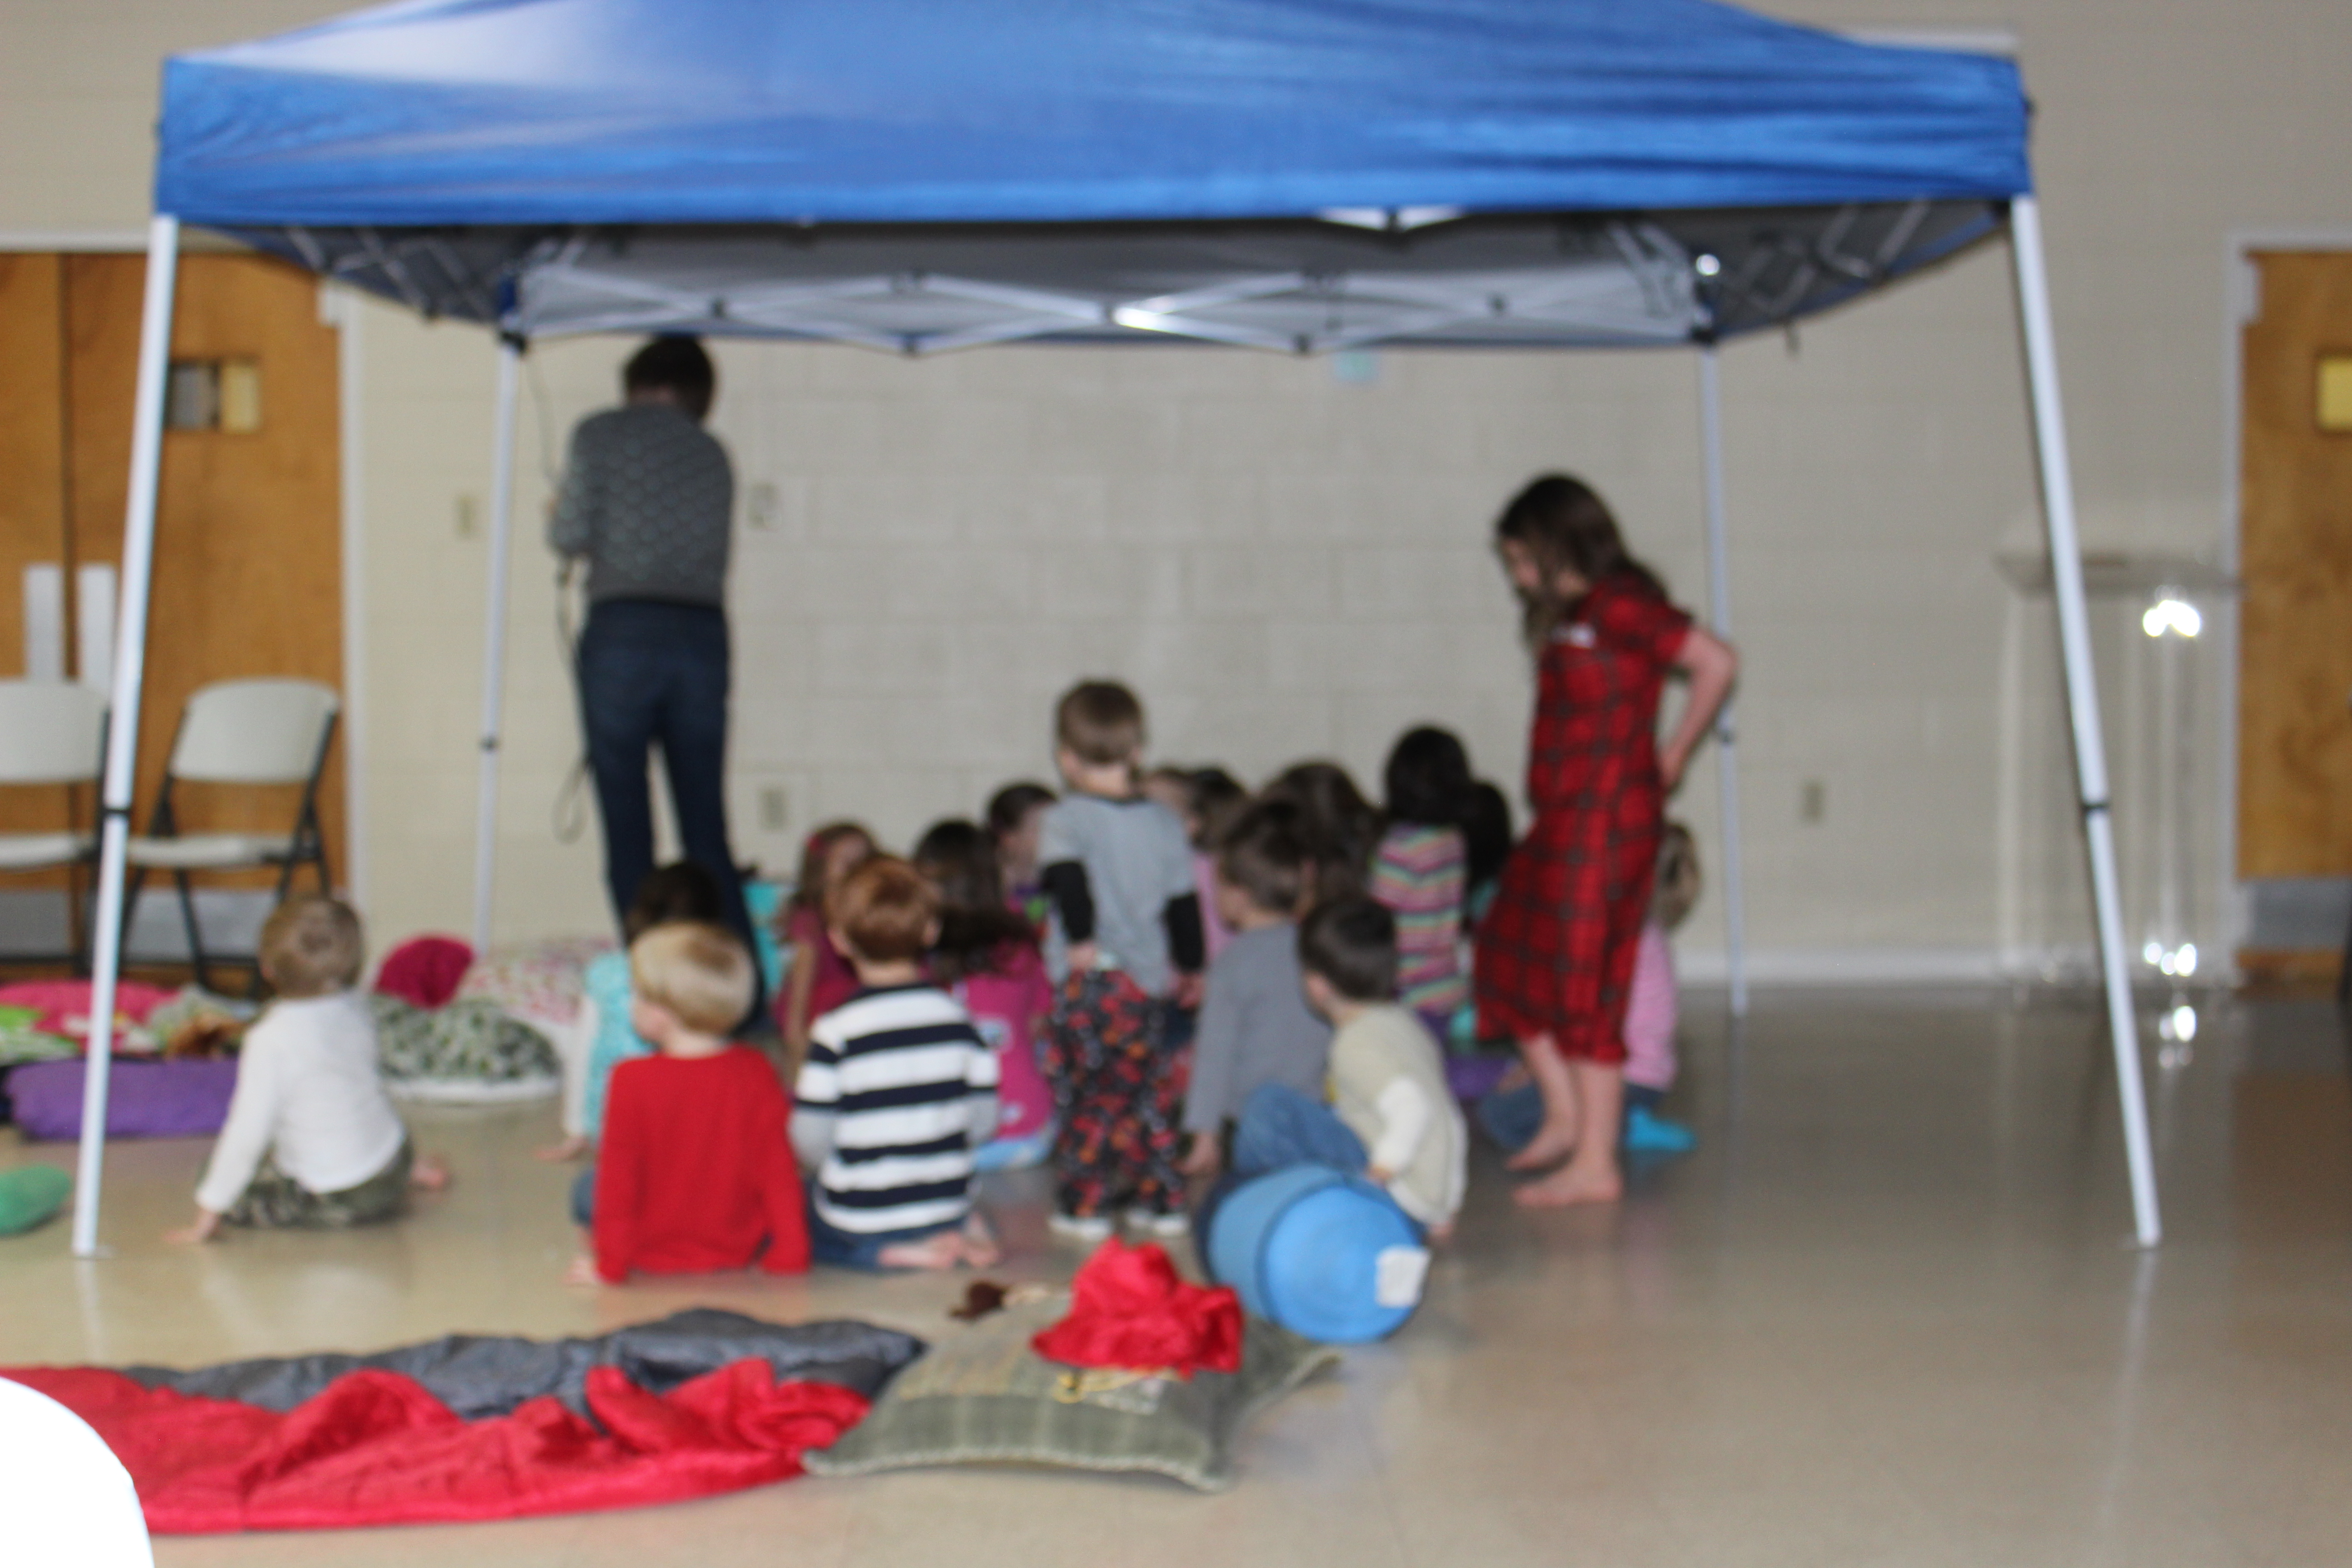 pictures of Lock-in 011